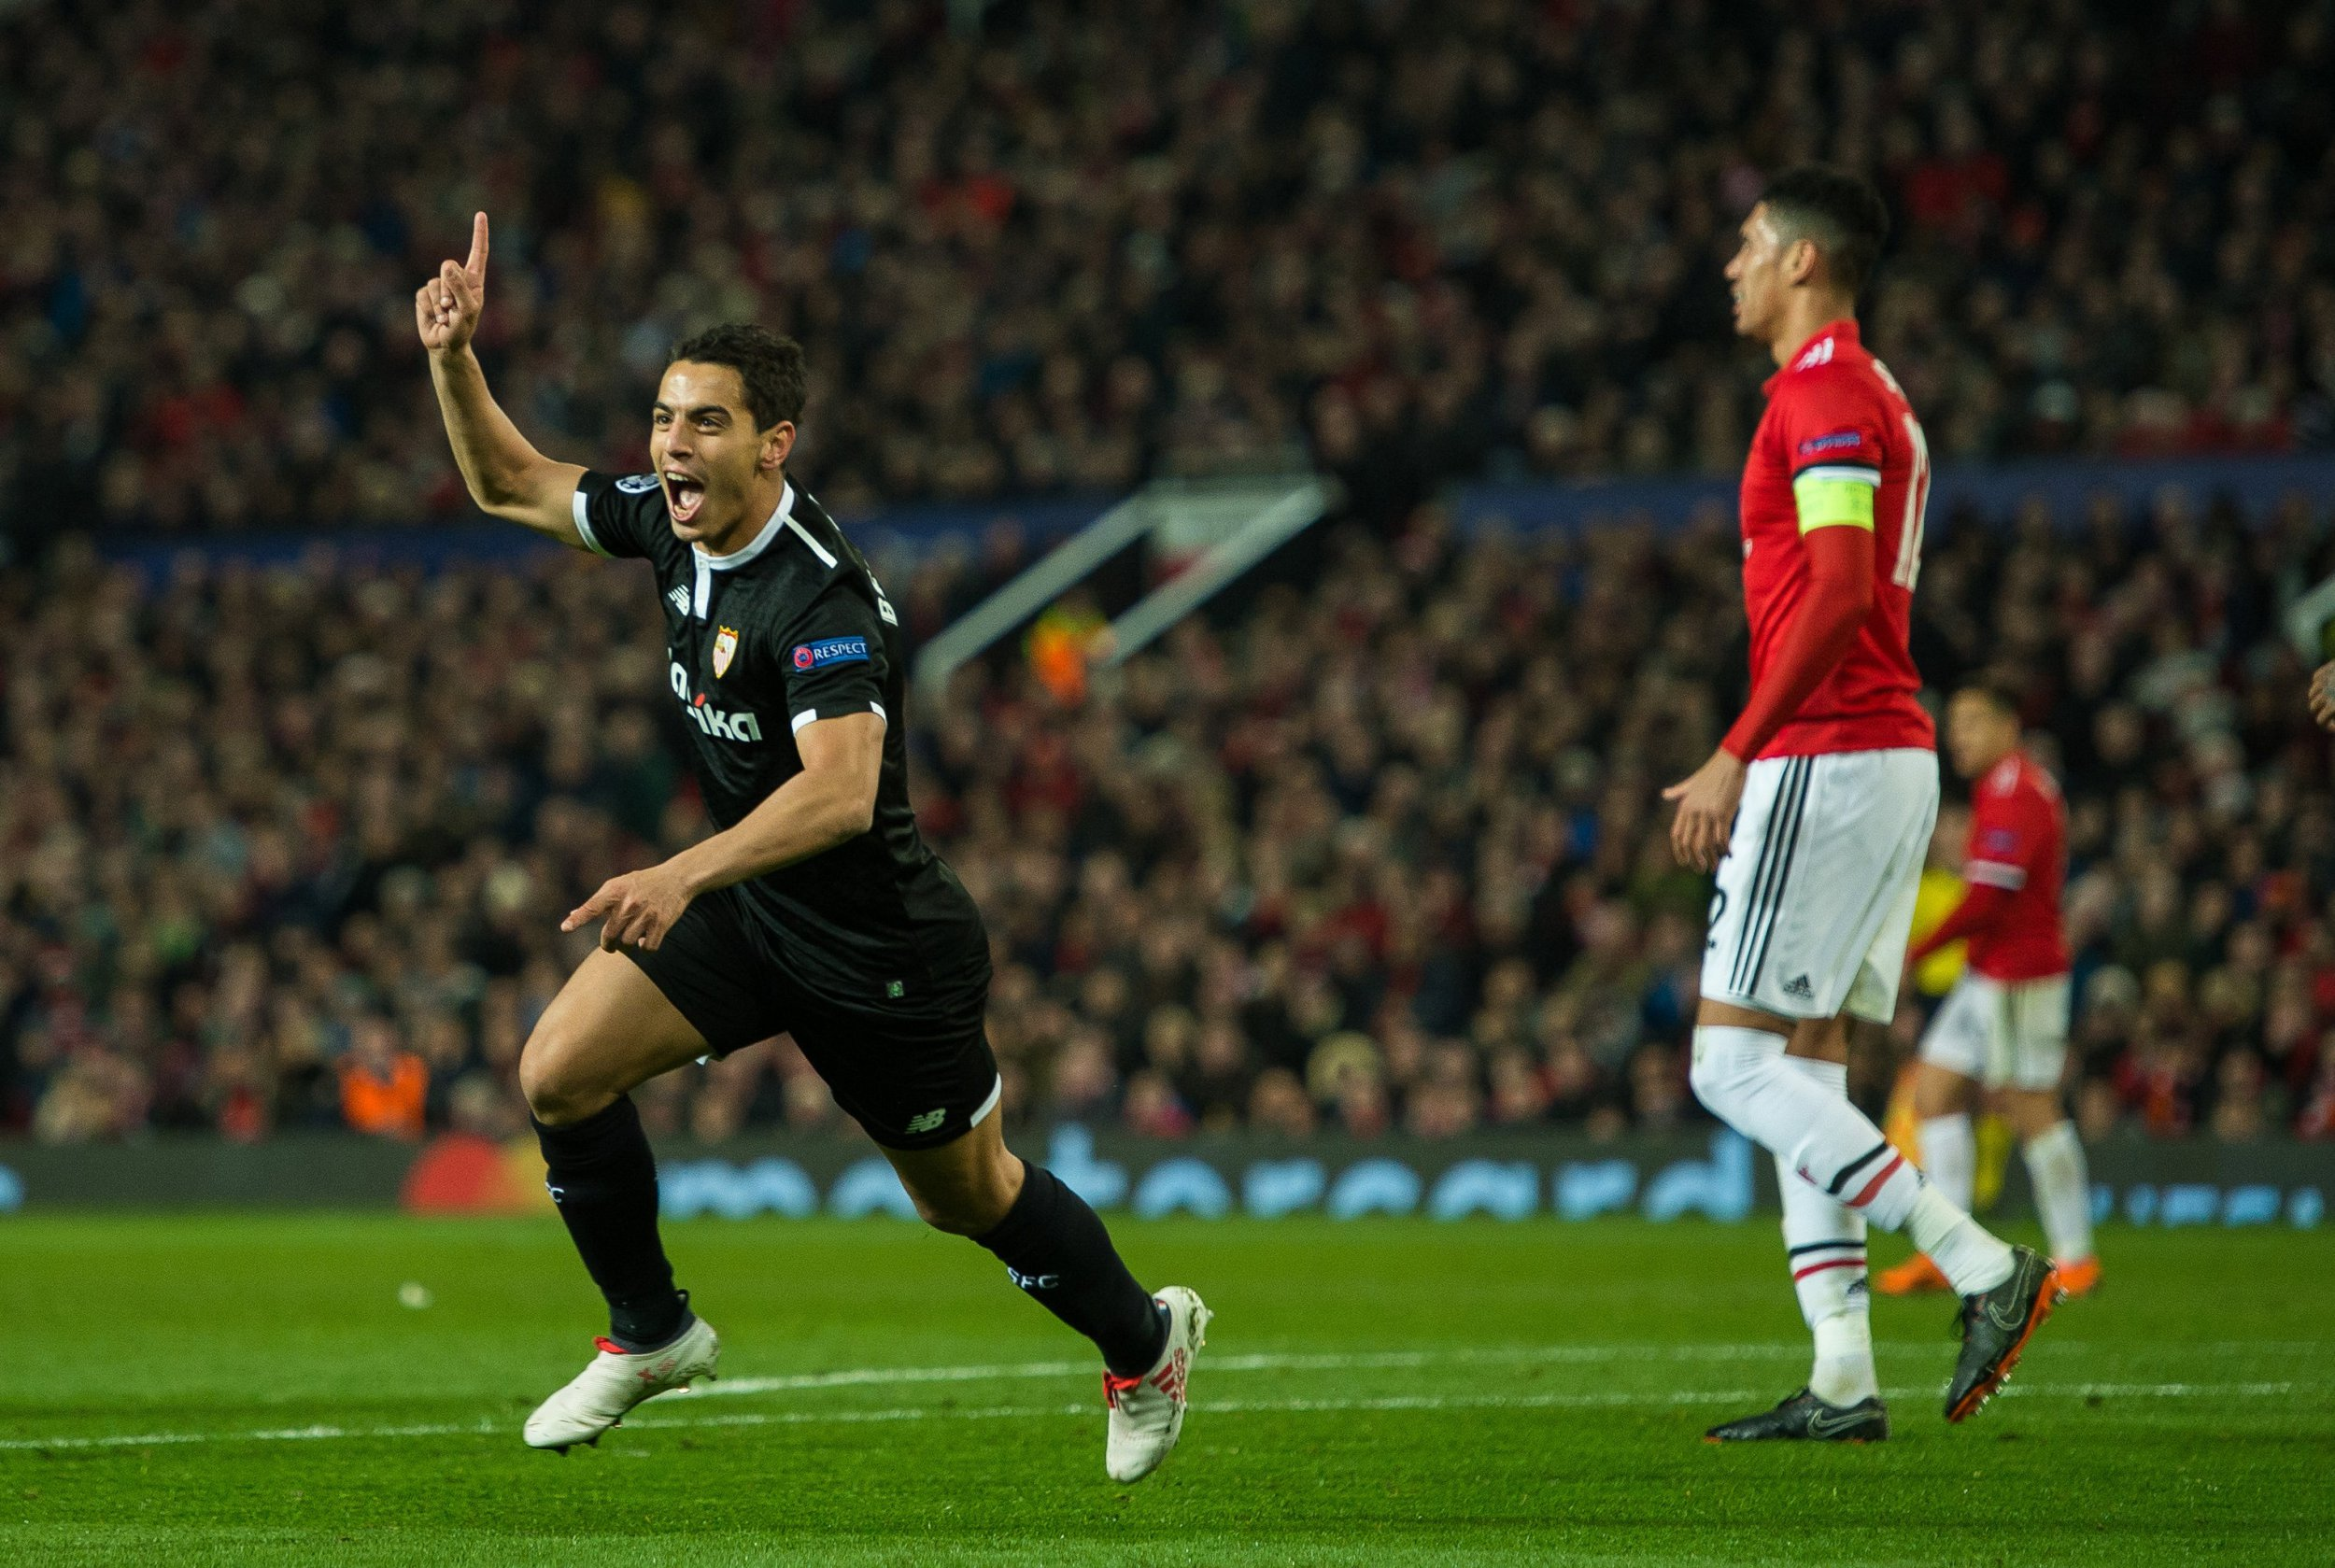 epa06601655 Wissam Ben Yedder (L) of Sevilla celebrates scoring the 2-0 lead during the UEFA Champions League Round of 16 second leg soccer match between Manchester United and Sevilla FC held at Old Trafford, Manchester, Britain, 13 March 2018. EPA/PETER POWELL